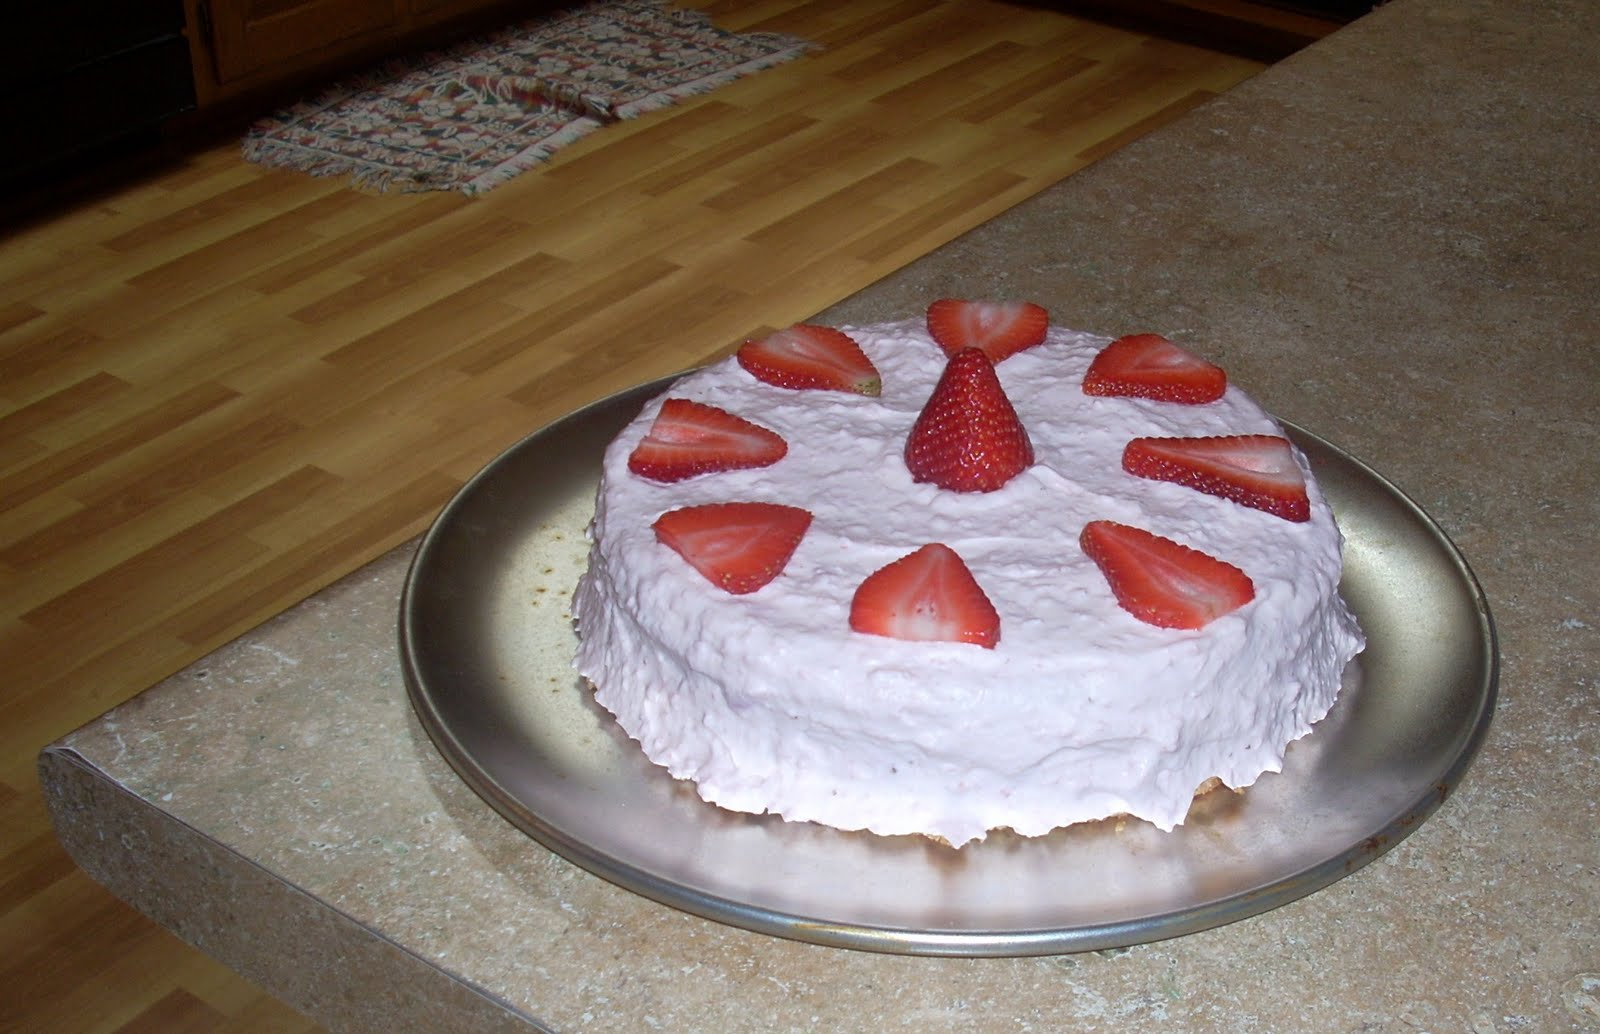 Homemade Cake Images : Poems About Oranges: Homemade Strawberry Cake